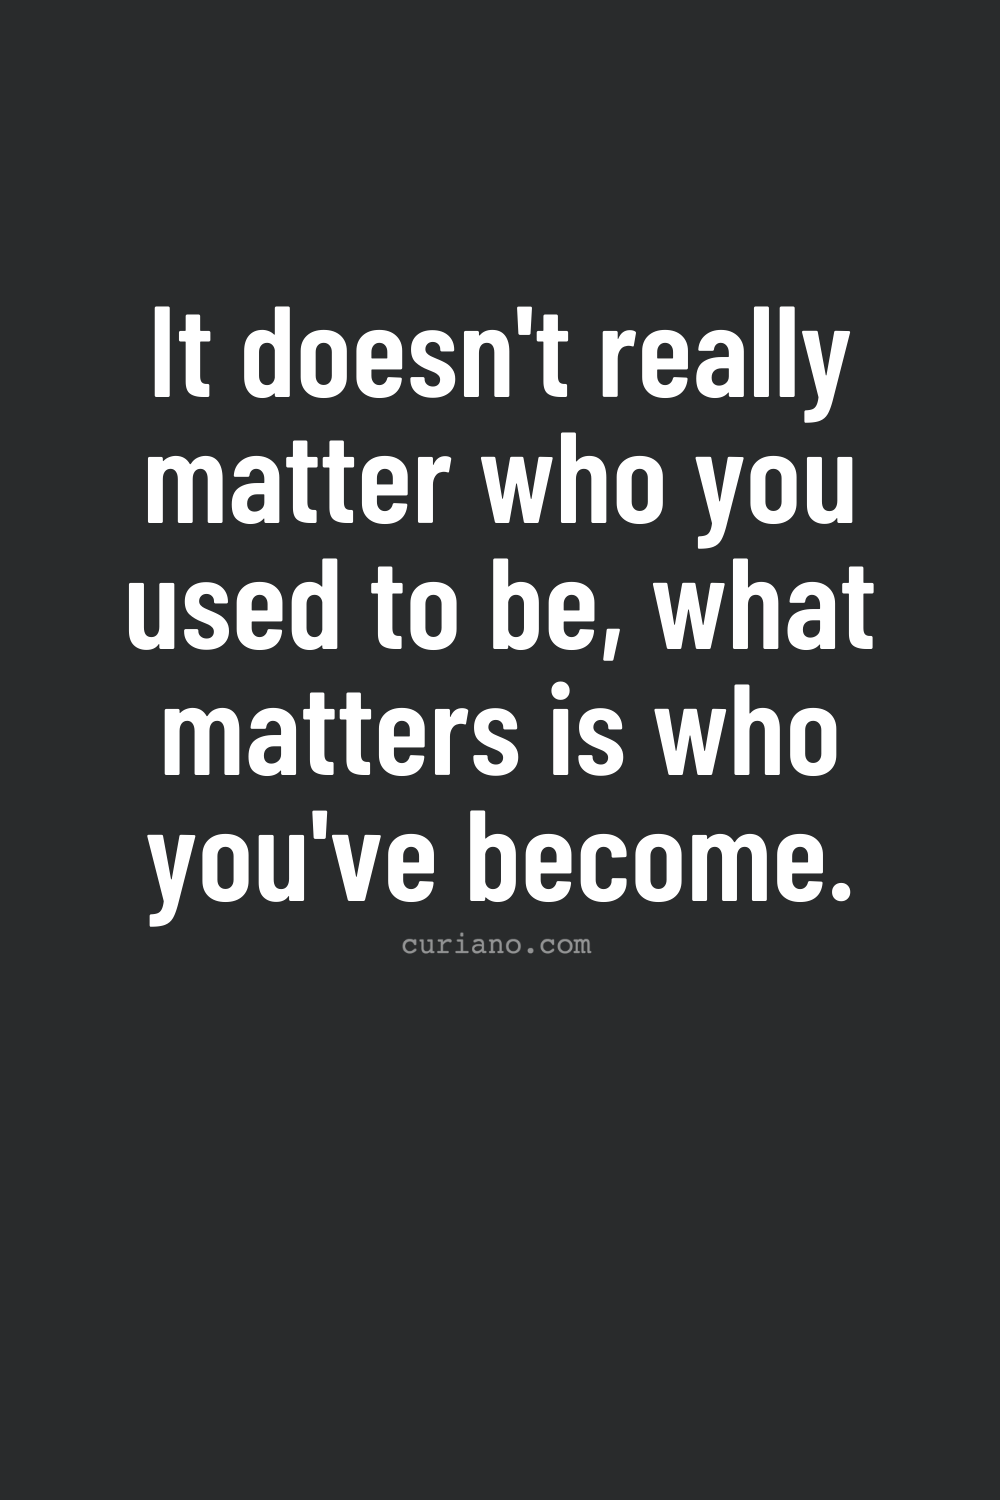 It doesn't really matter who you used to be, what matters is who you've become.